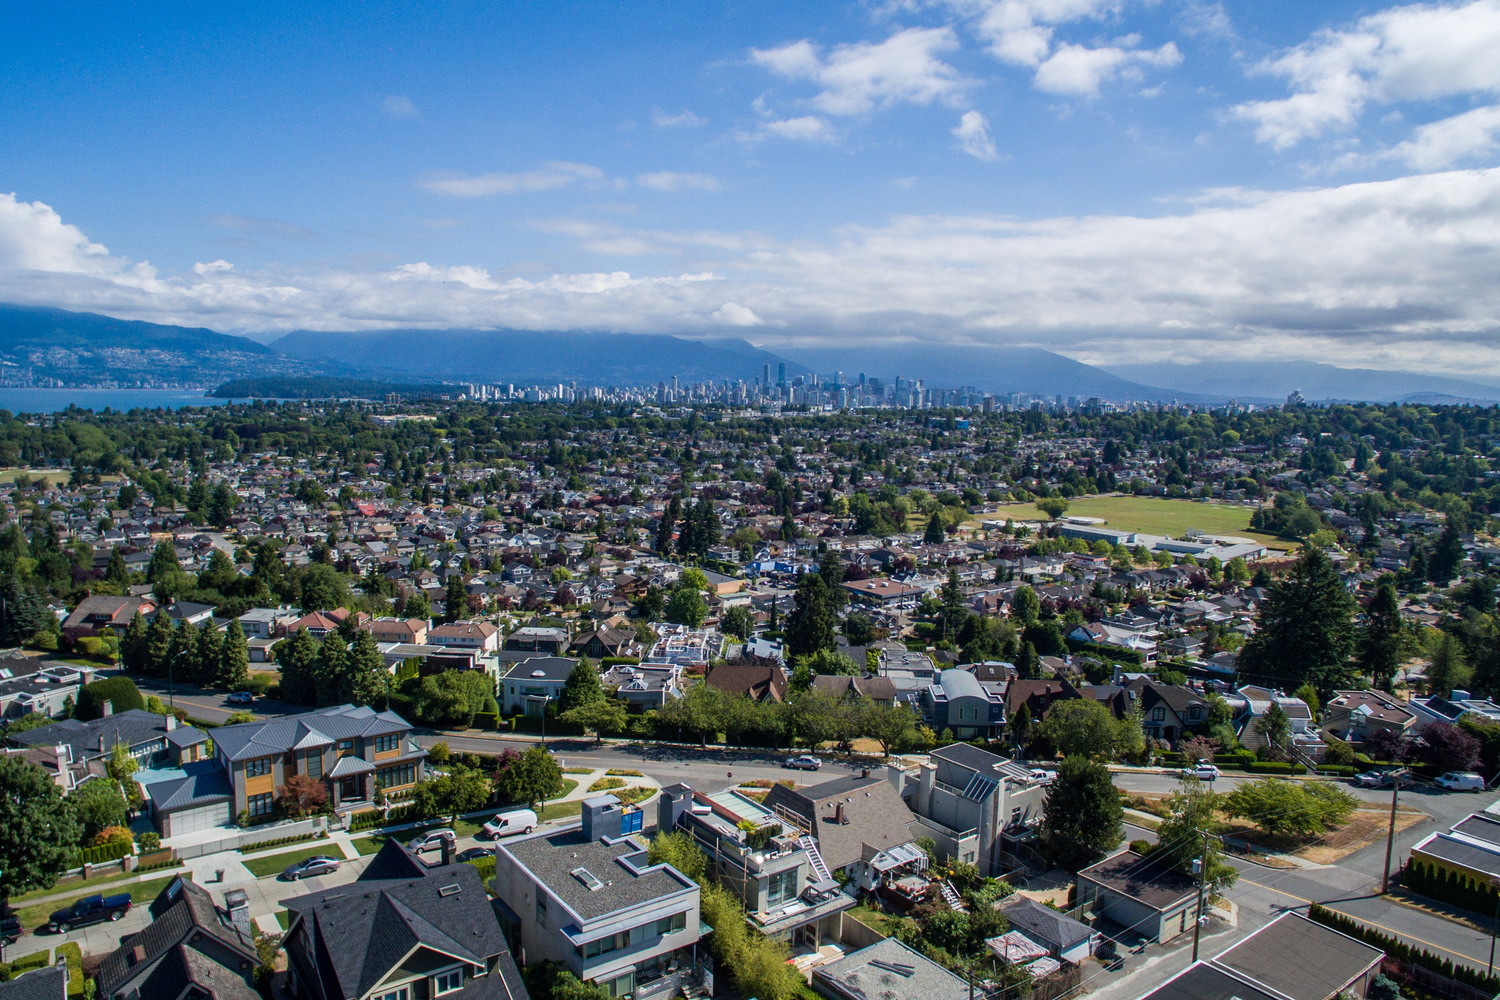 arbutus aerial view houses a